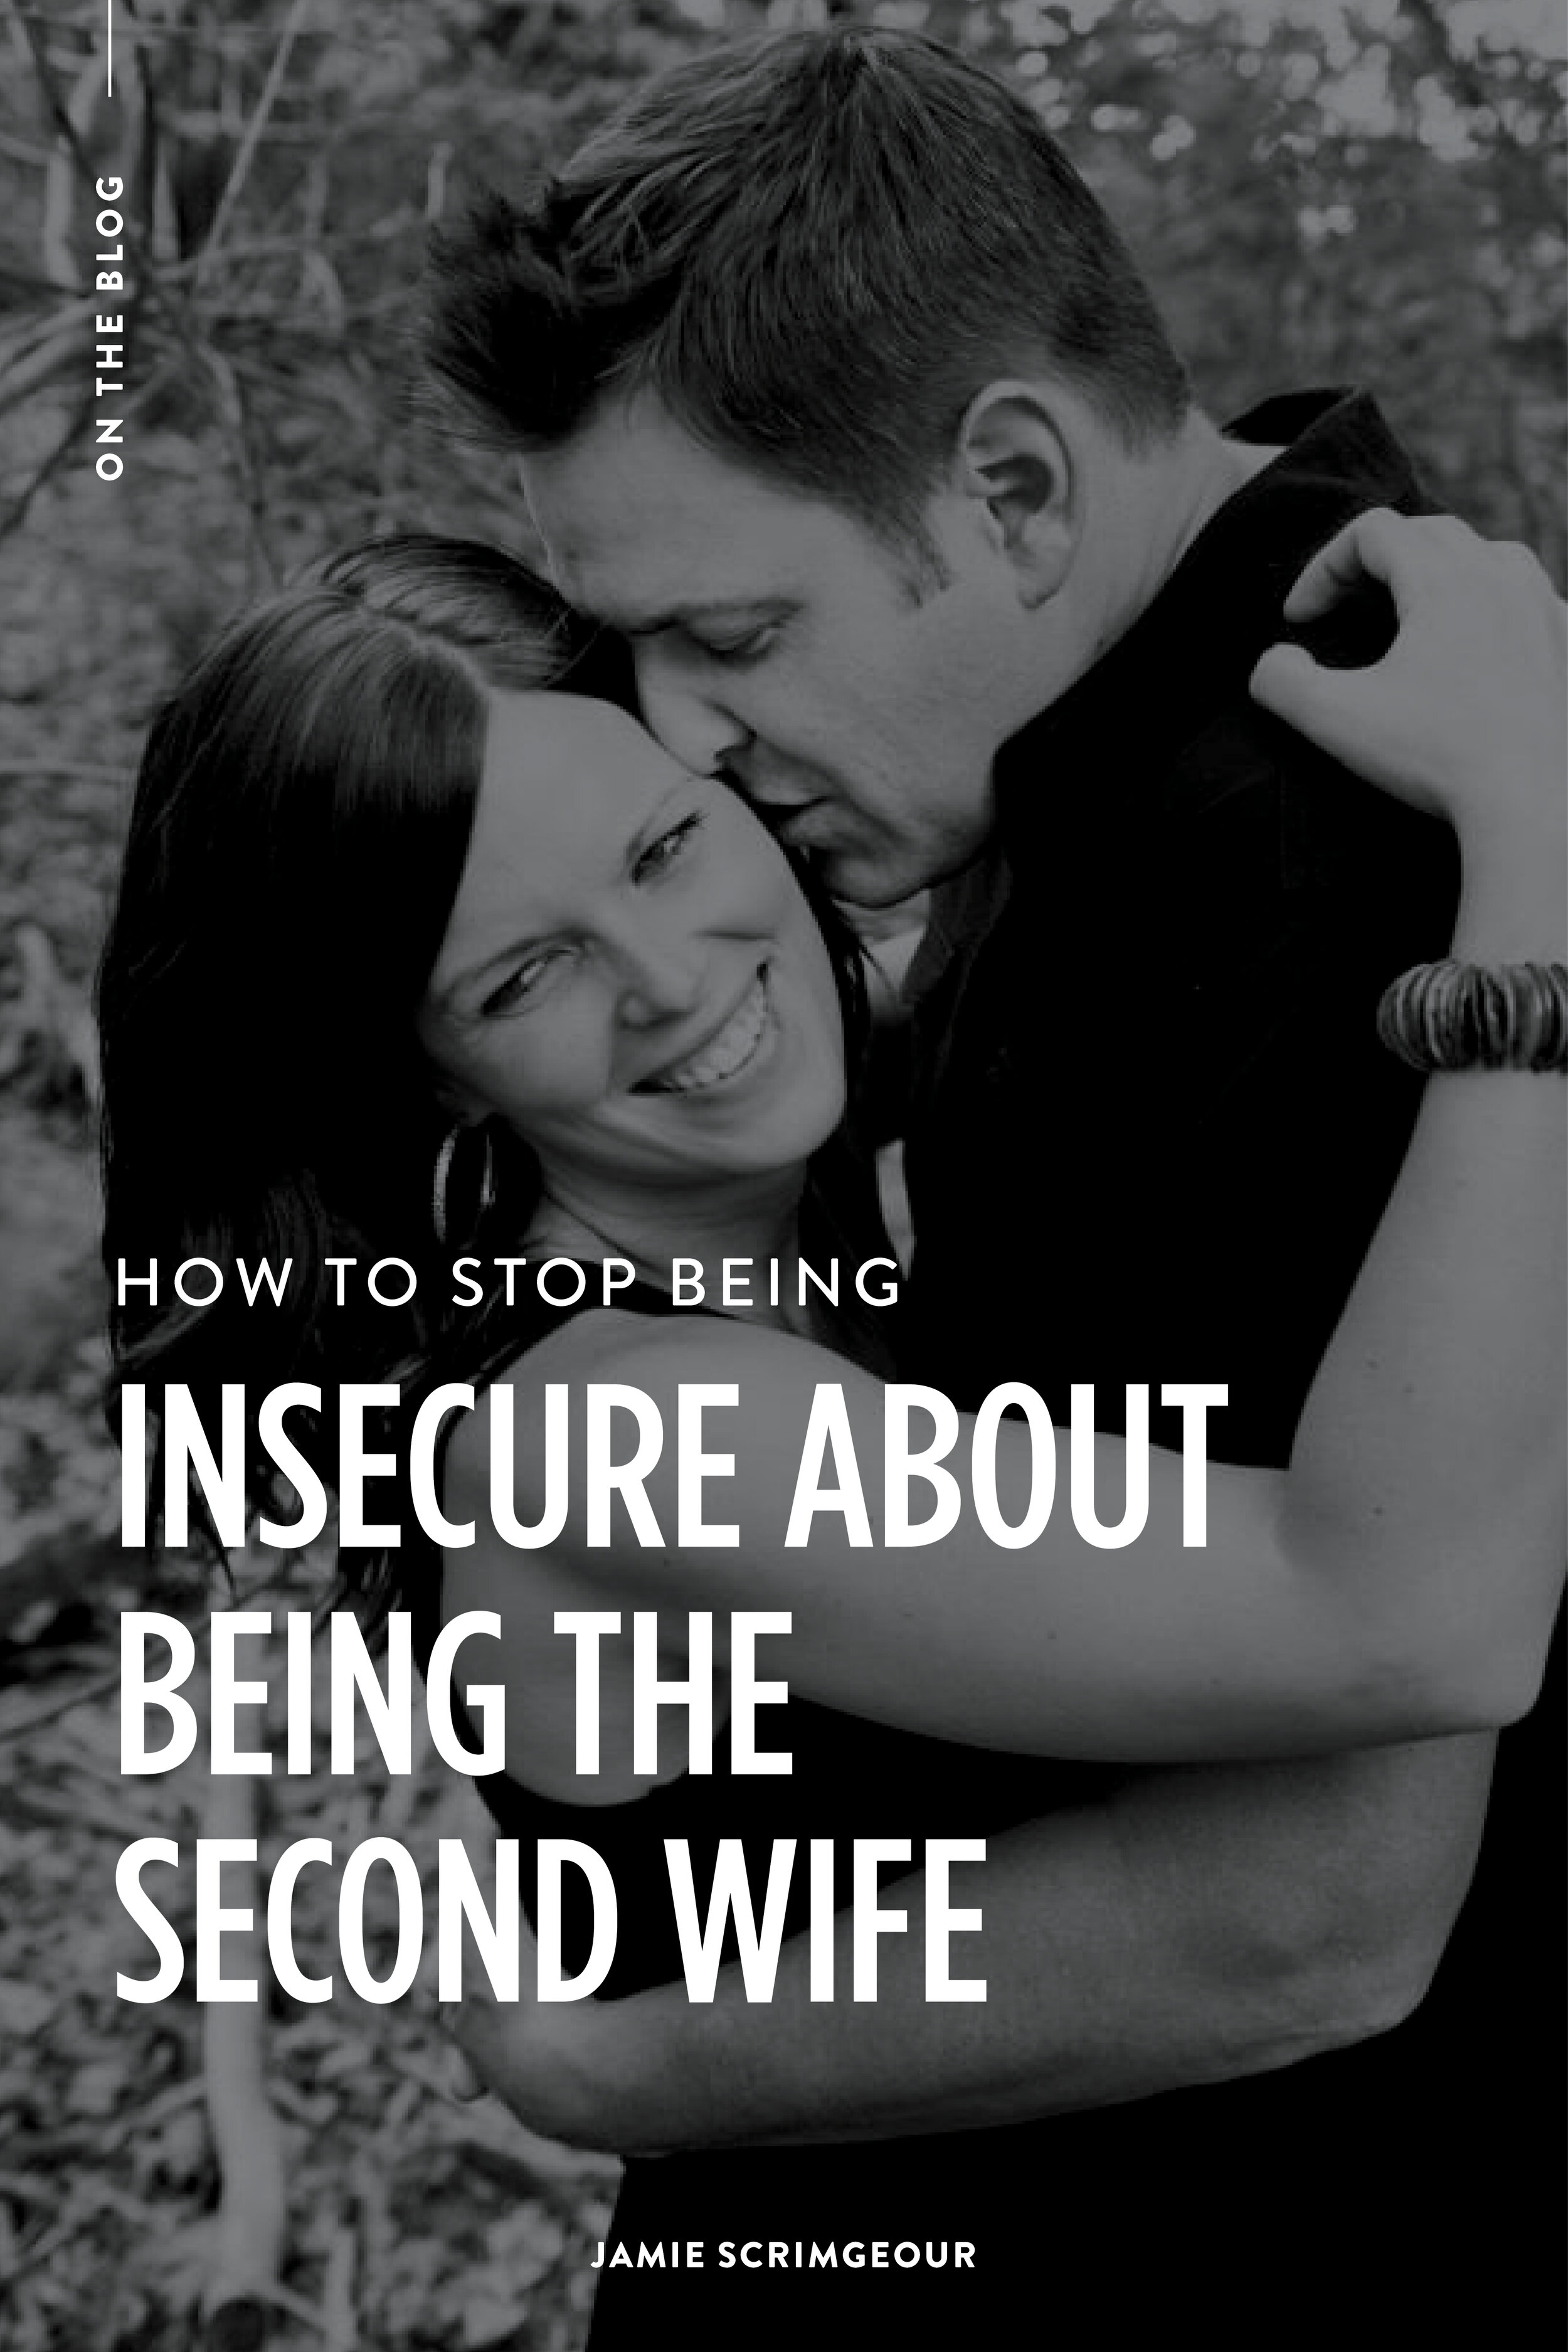 Jamie Scrimgeour Blog - How To Stop Being Insecure About Being The Second Wife